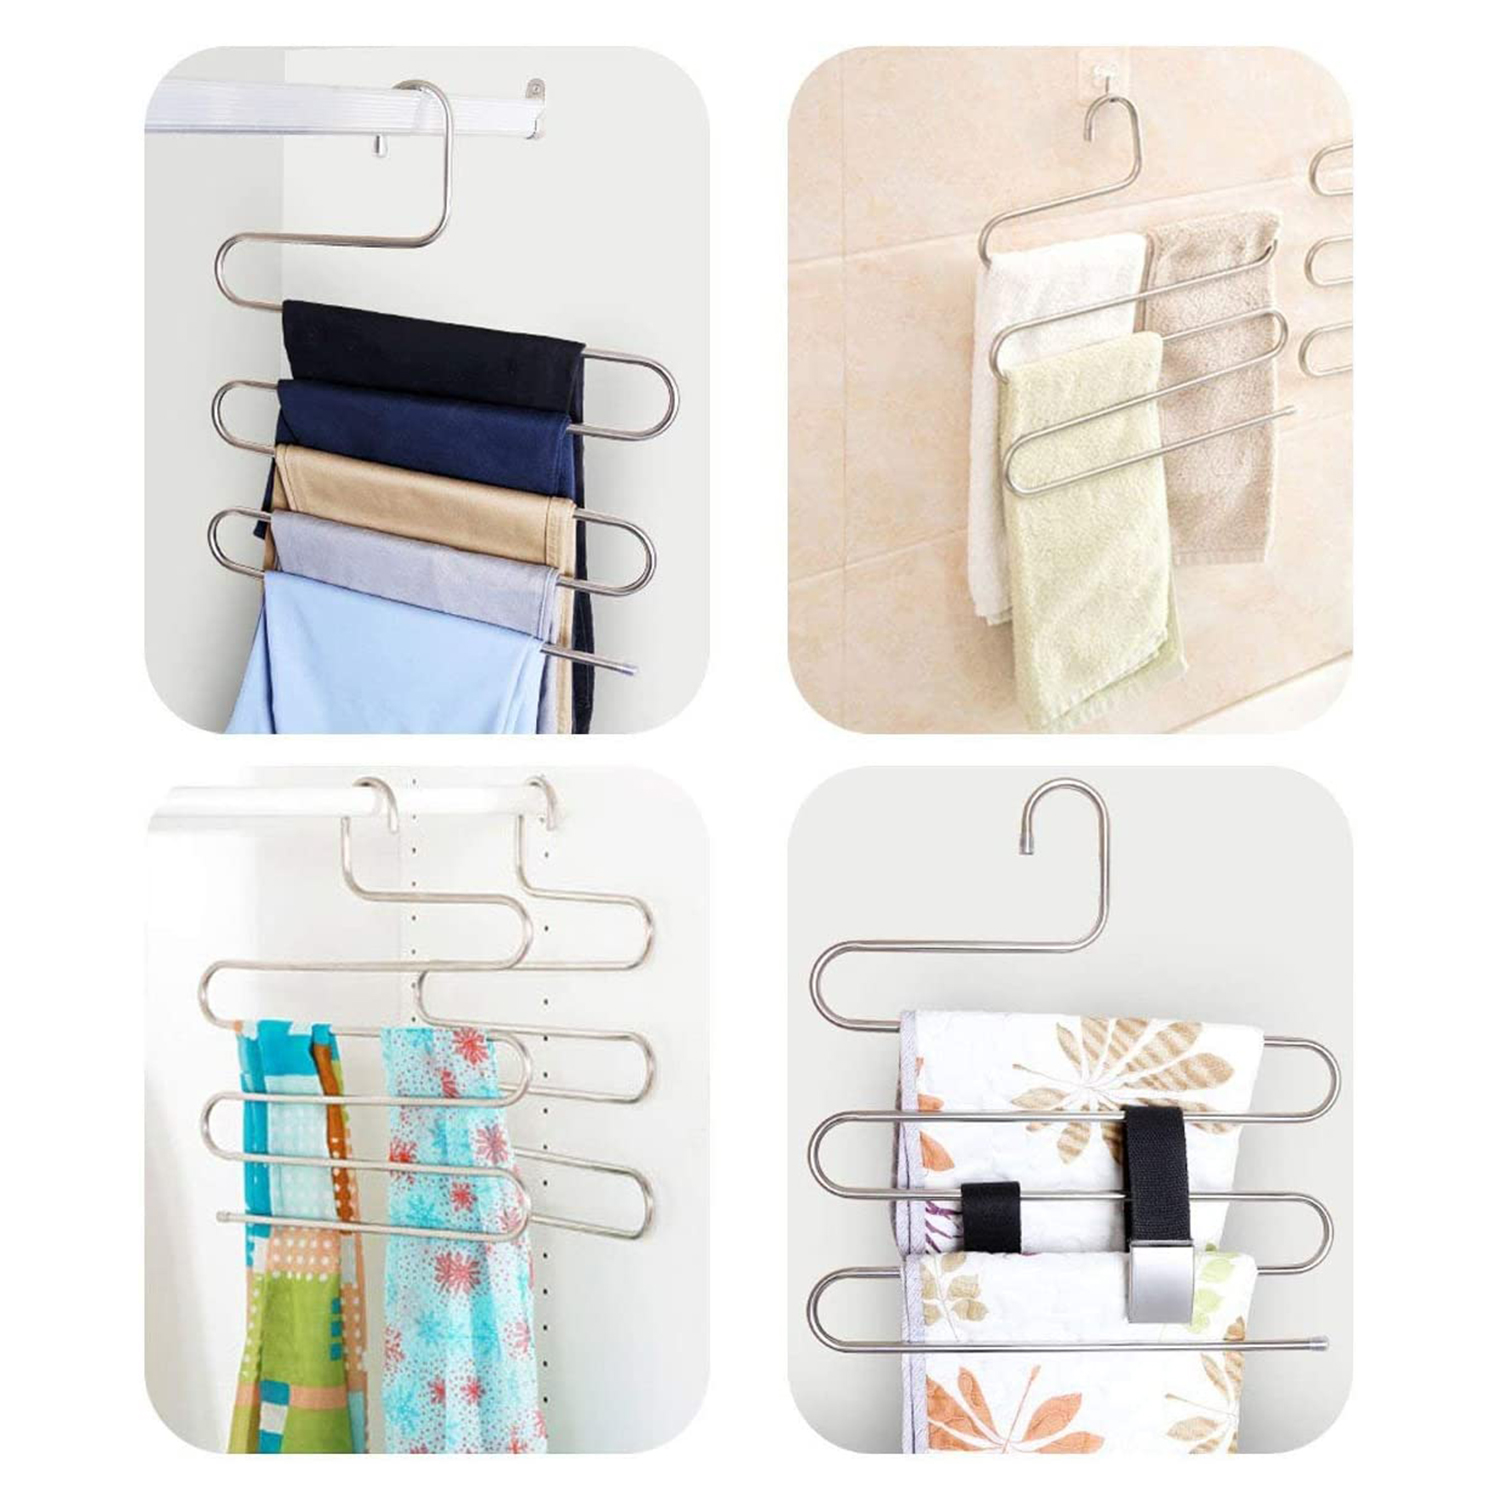 DOIOWN S-Type Stainless Steel Clothes Pants Hangers Closet